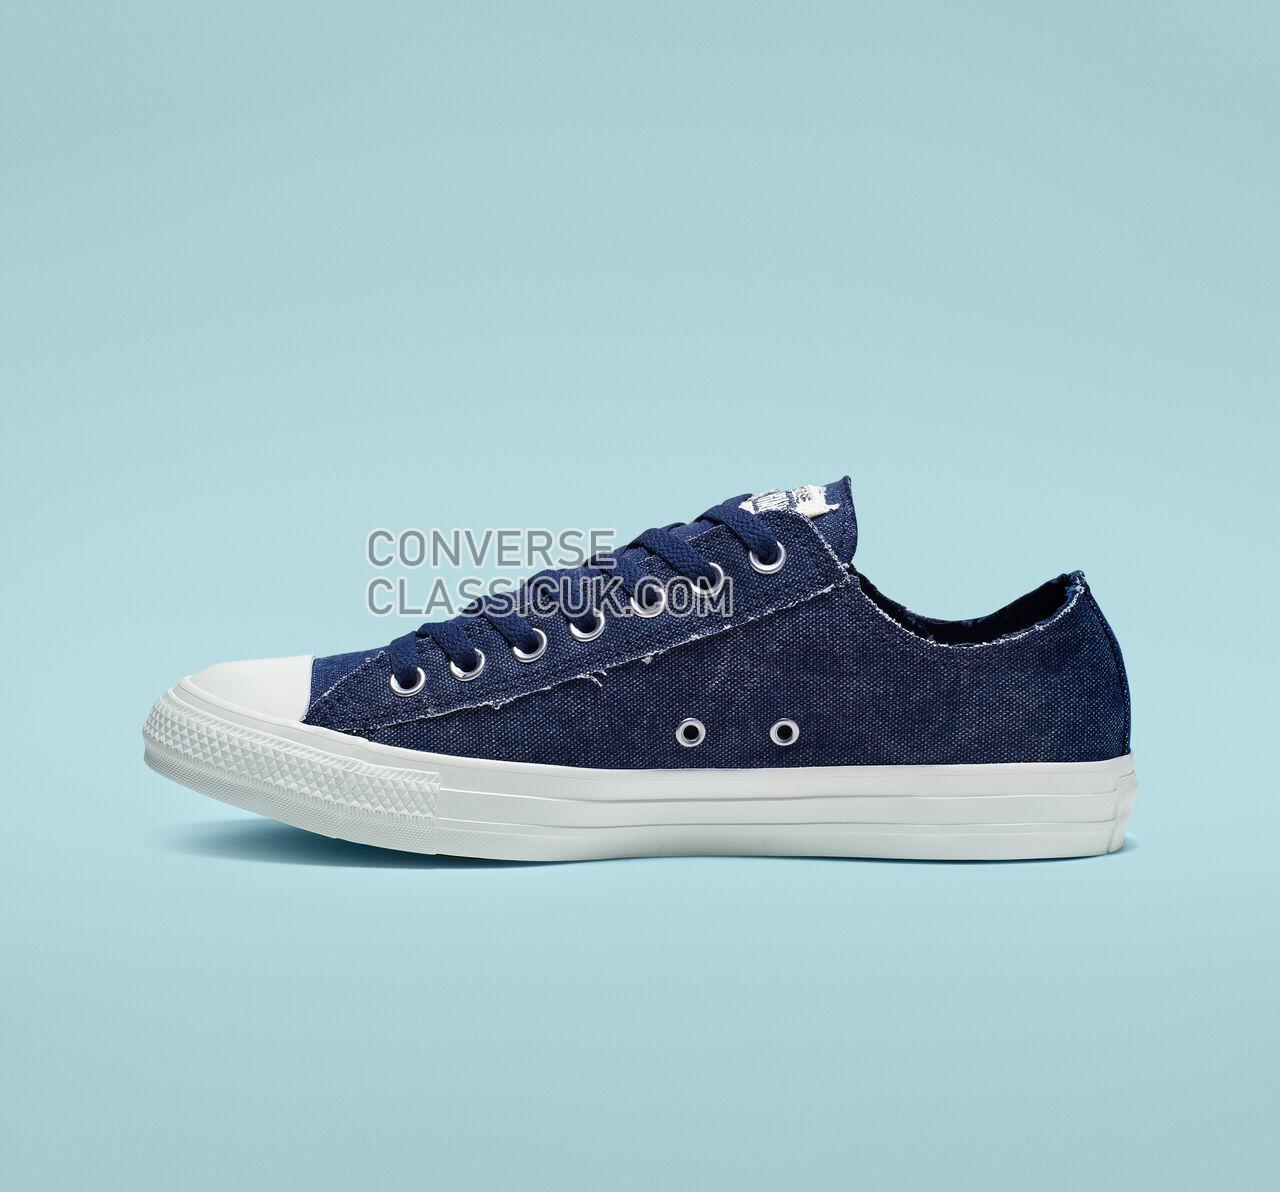 Converse Chuck Taylor All Star Washed Out Low Top Mens Womens Unisex 164099F Navy/Egret/Egret Shoes